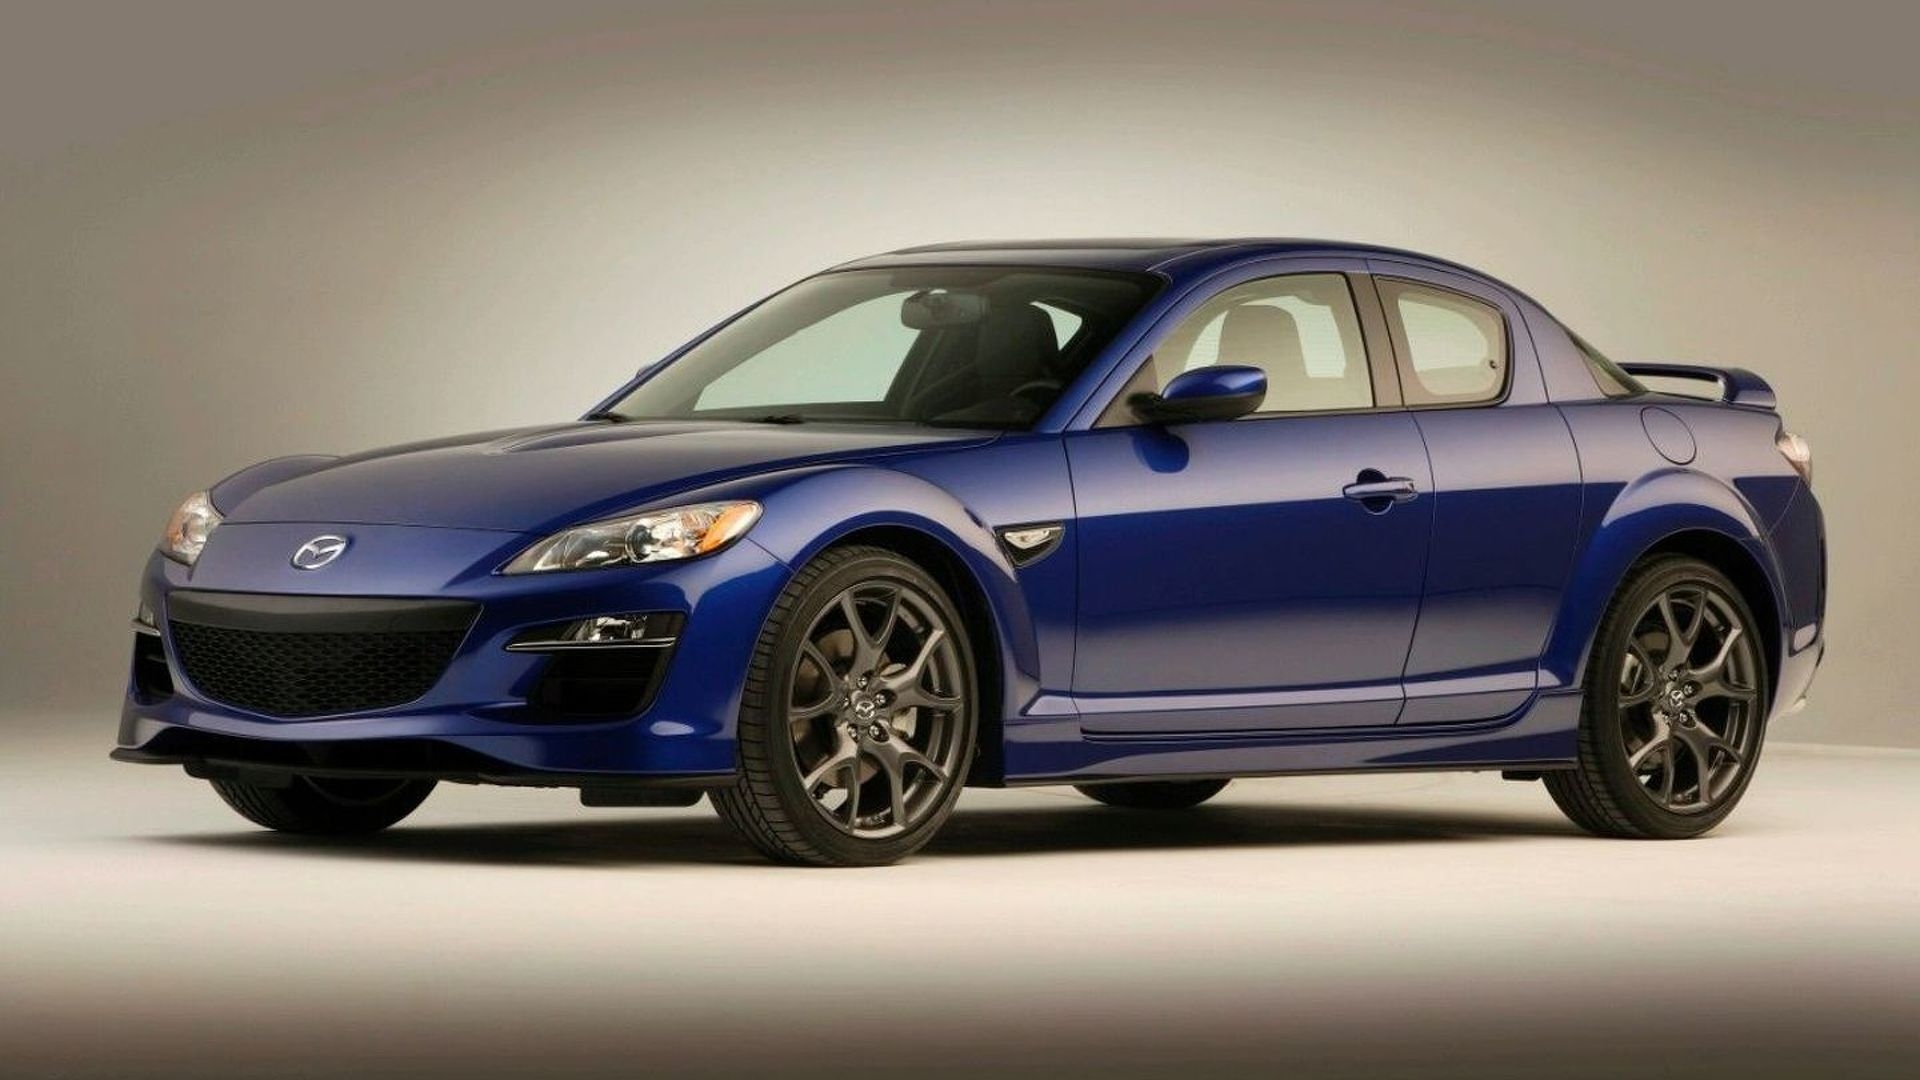 2017 Mazda Rx 7 8 Successor To Pack A 455 Ps Turbocharged Rotary Engine Report